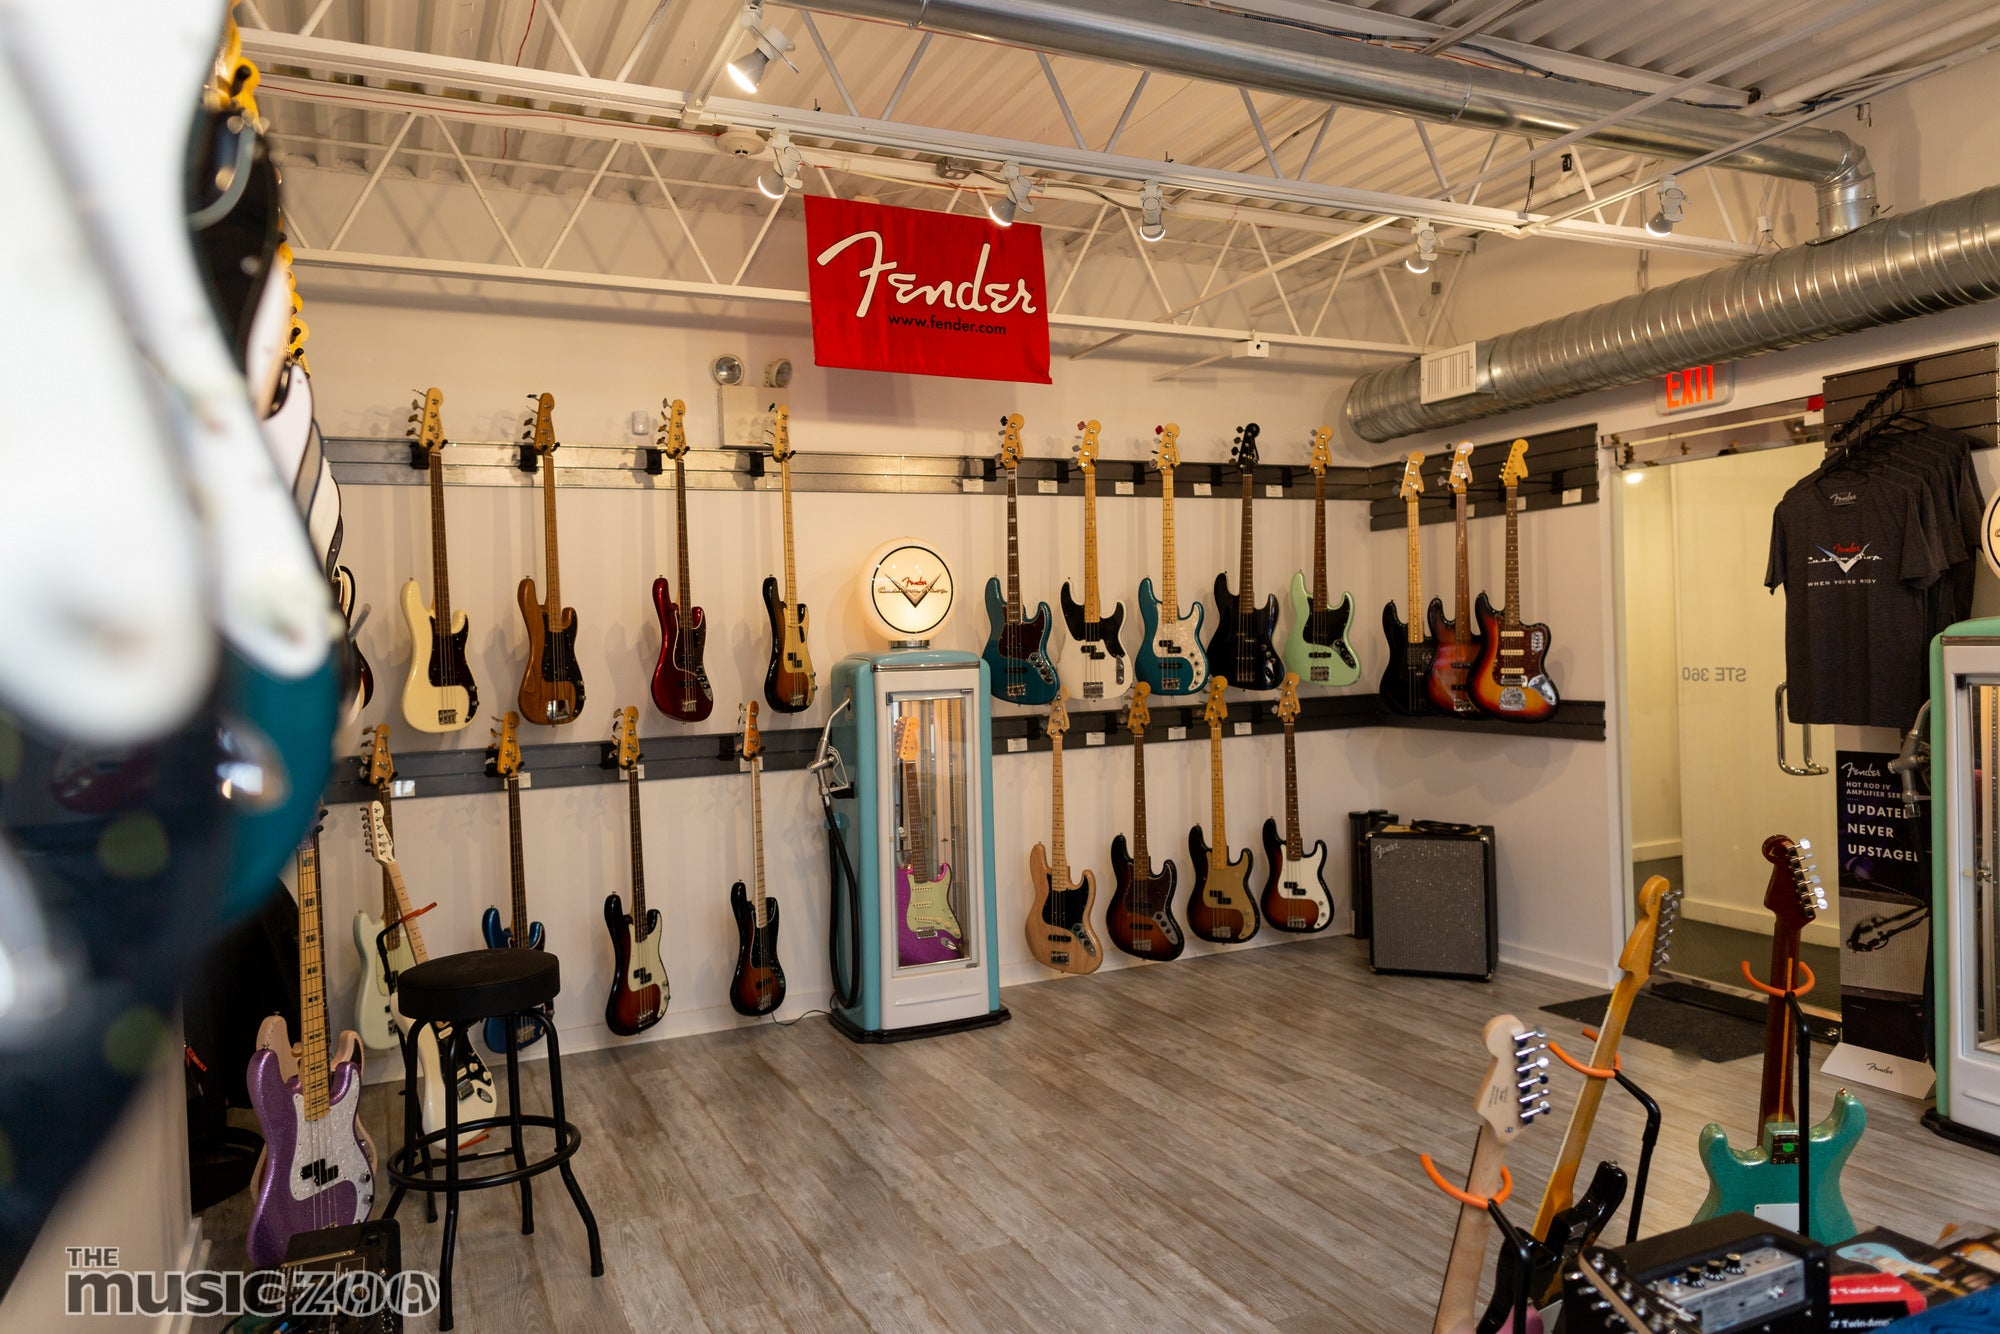 Visit the fender showroom at the music zoo in roslyn ny!